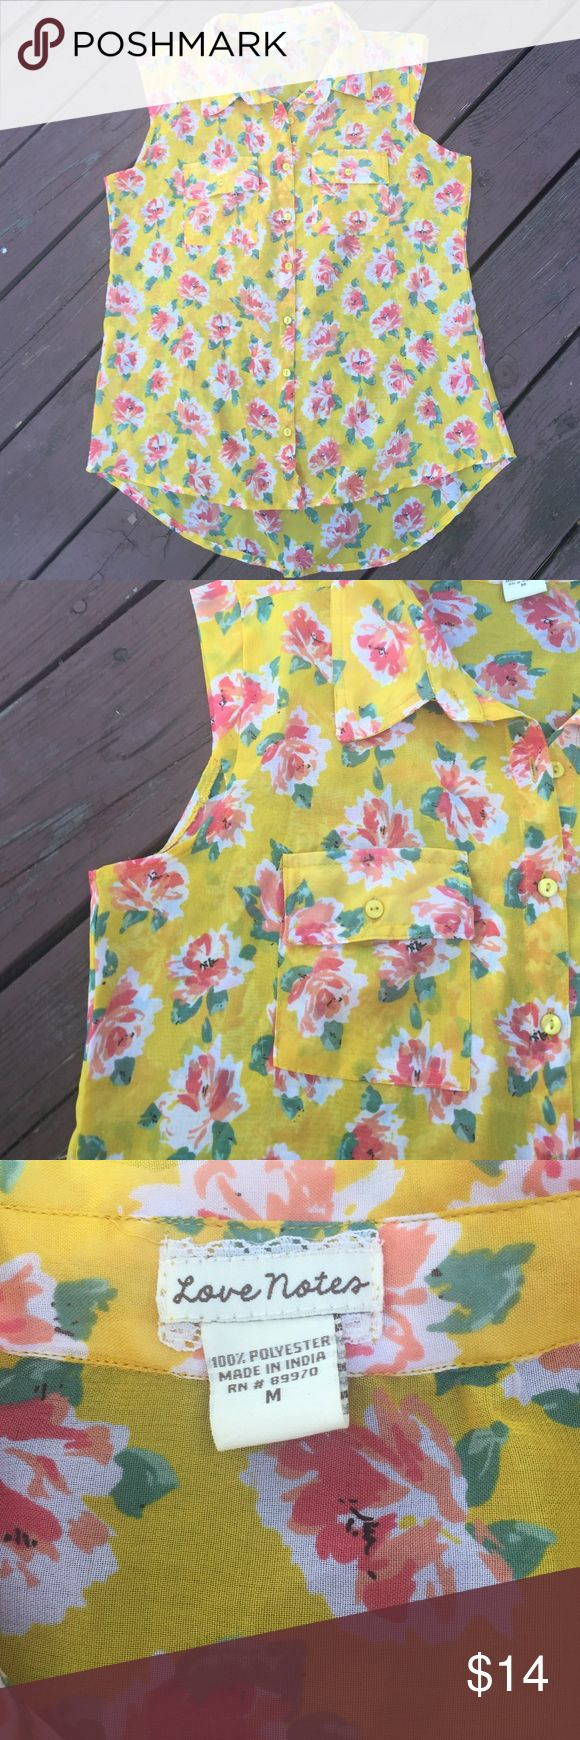 Brand new floral shirt size M Brand new collared sleeveless shirt. Yellow with pink florals. Light and flowy- cute on its own or layered for fall. I bought from TJ Maxx to wear to a work event but never ended up using it! I ship within 24 hours of sales using recycled materials 💚🌲😊 Love Notes Tops Blouses